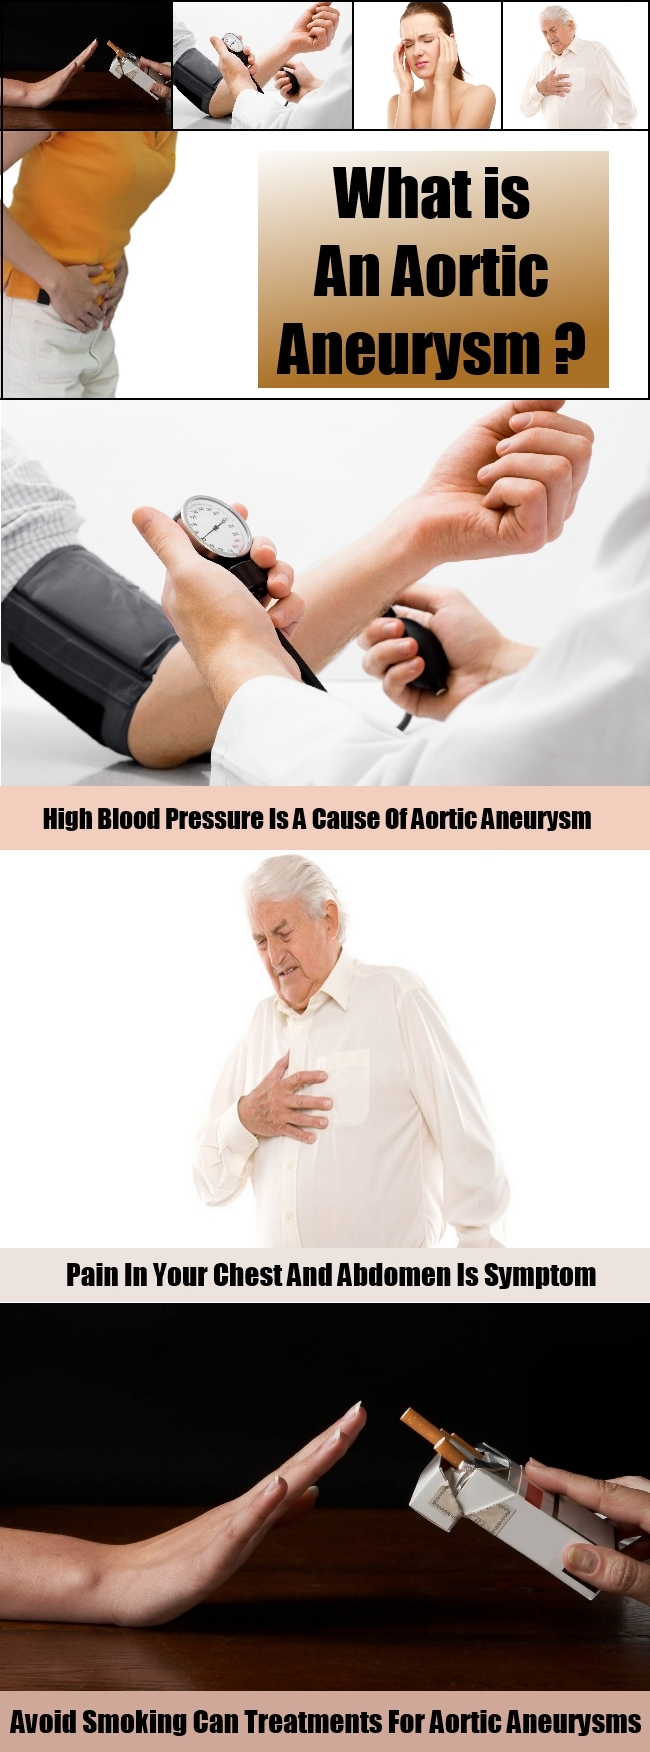 What is An Aortic Aneurysm